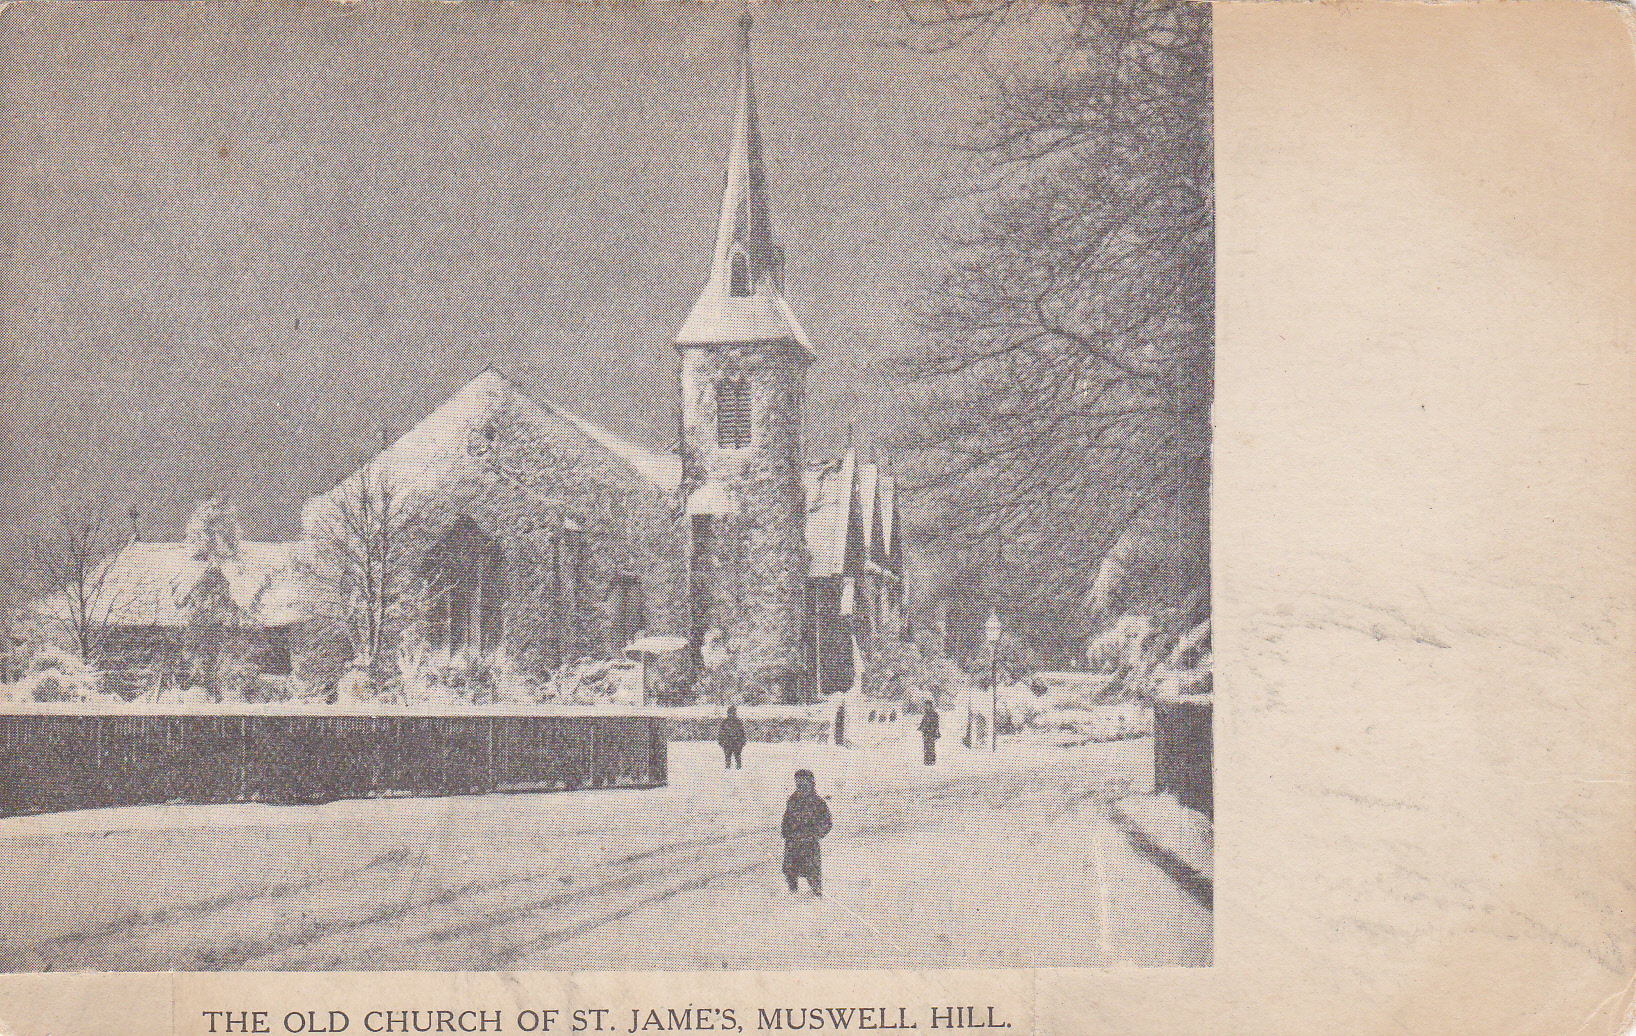 St James Church circa 1870